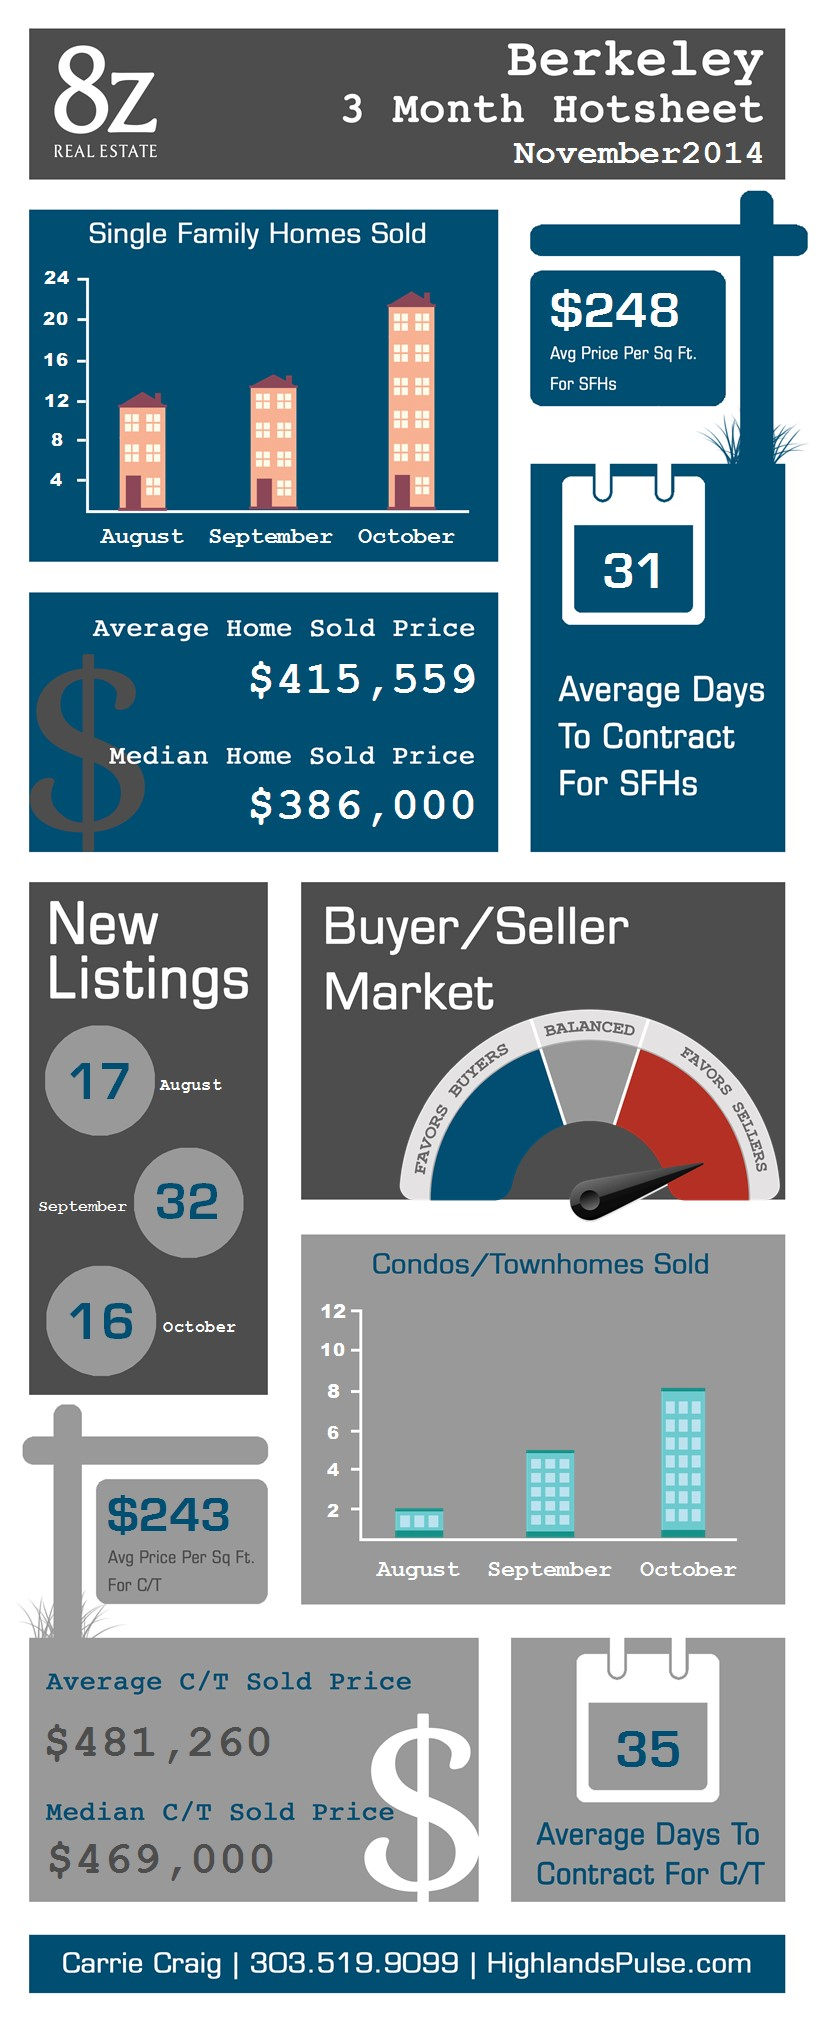 Berkeley - Denver, real estate infographic